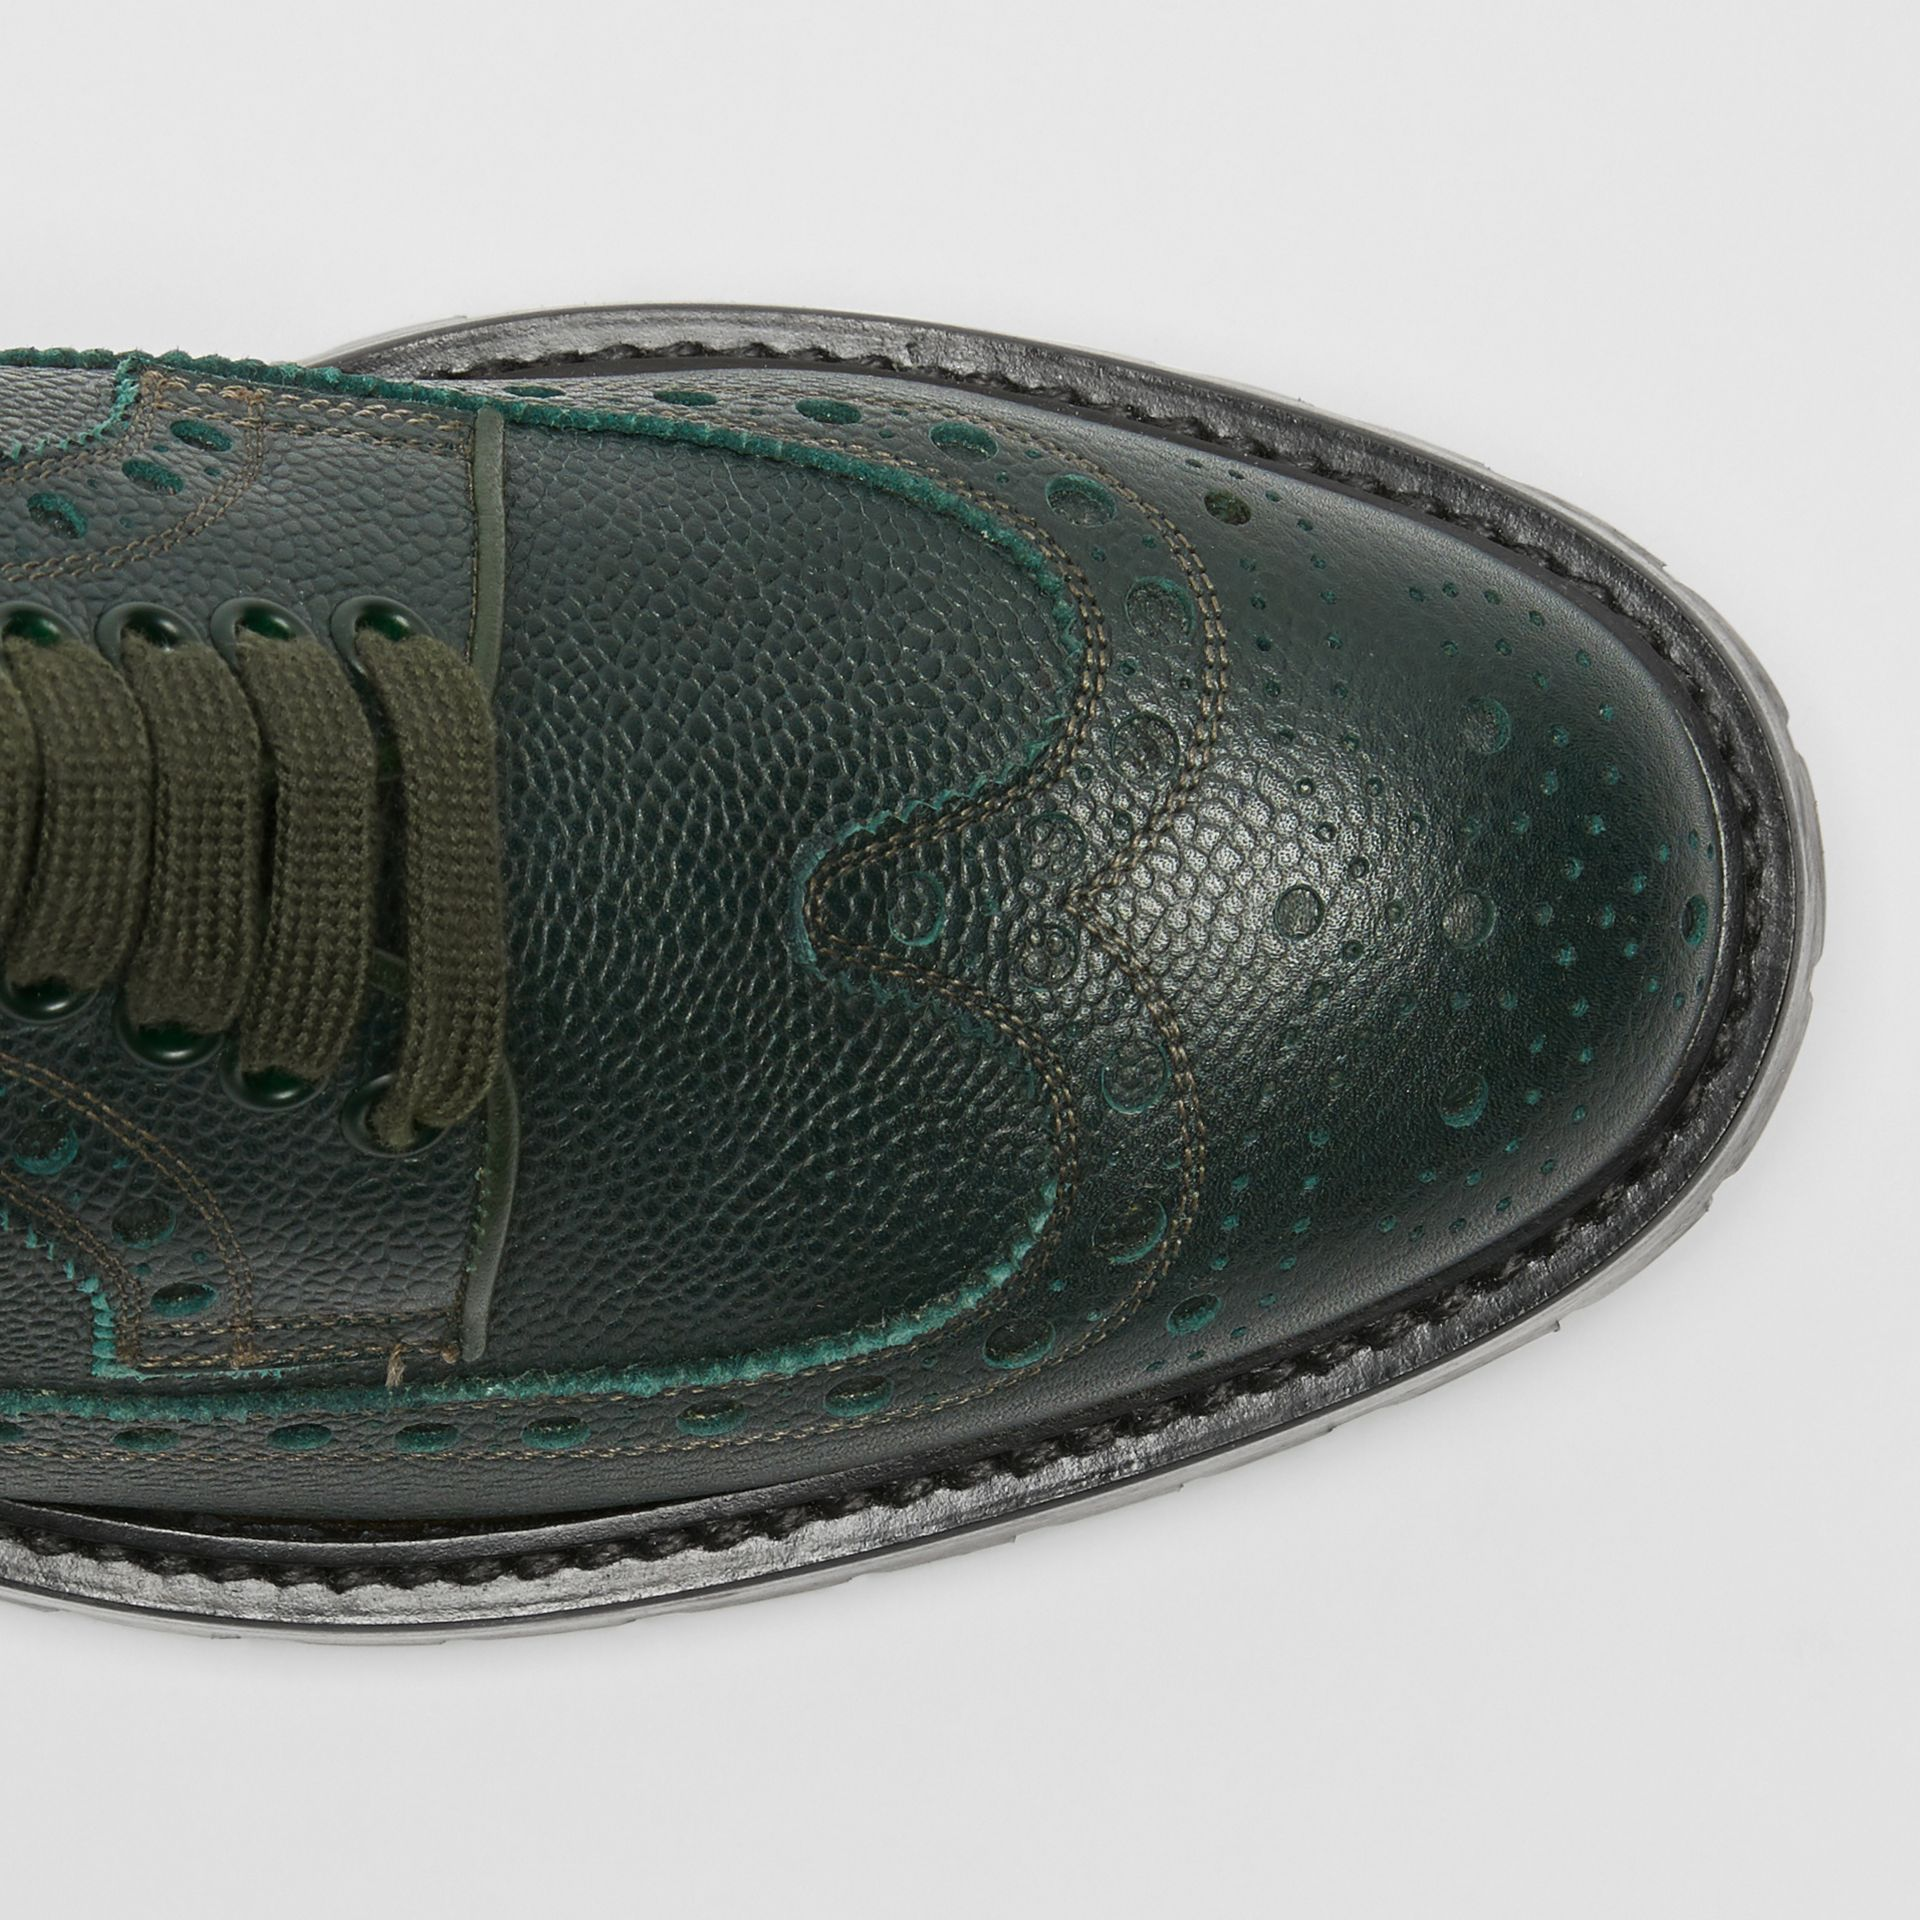 Brogue Detail Grainy Leather Derby Shoes in Deep Viridian Green - Men | Burberry Canada - gallery image 1